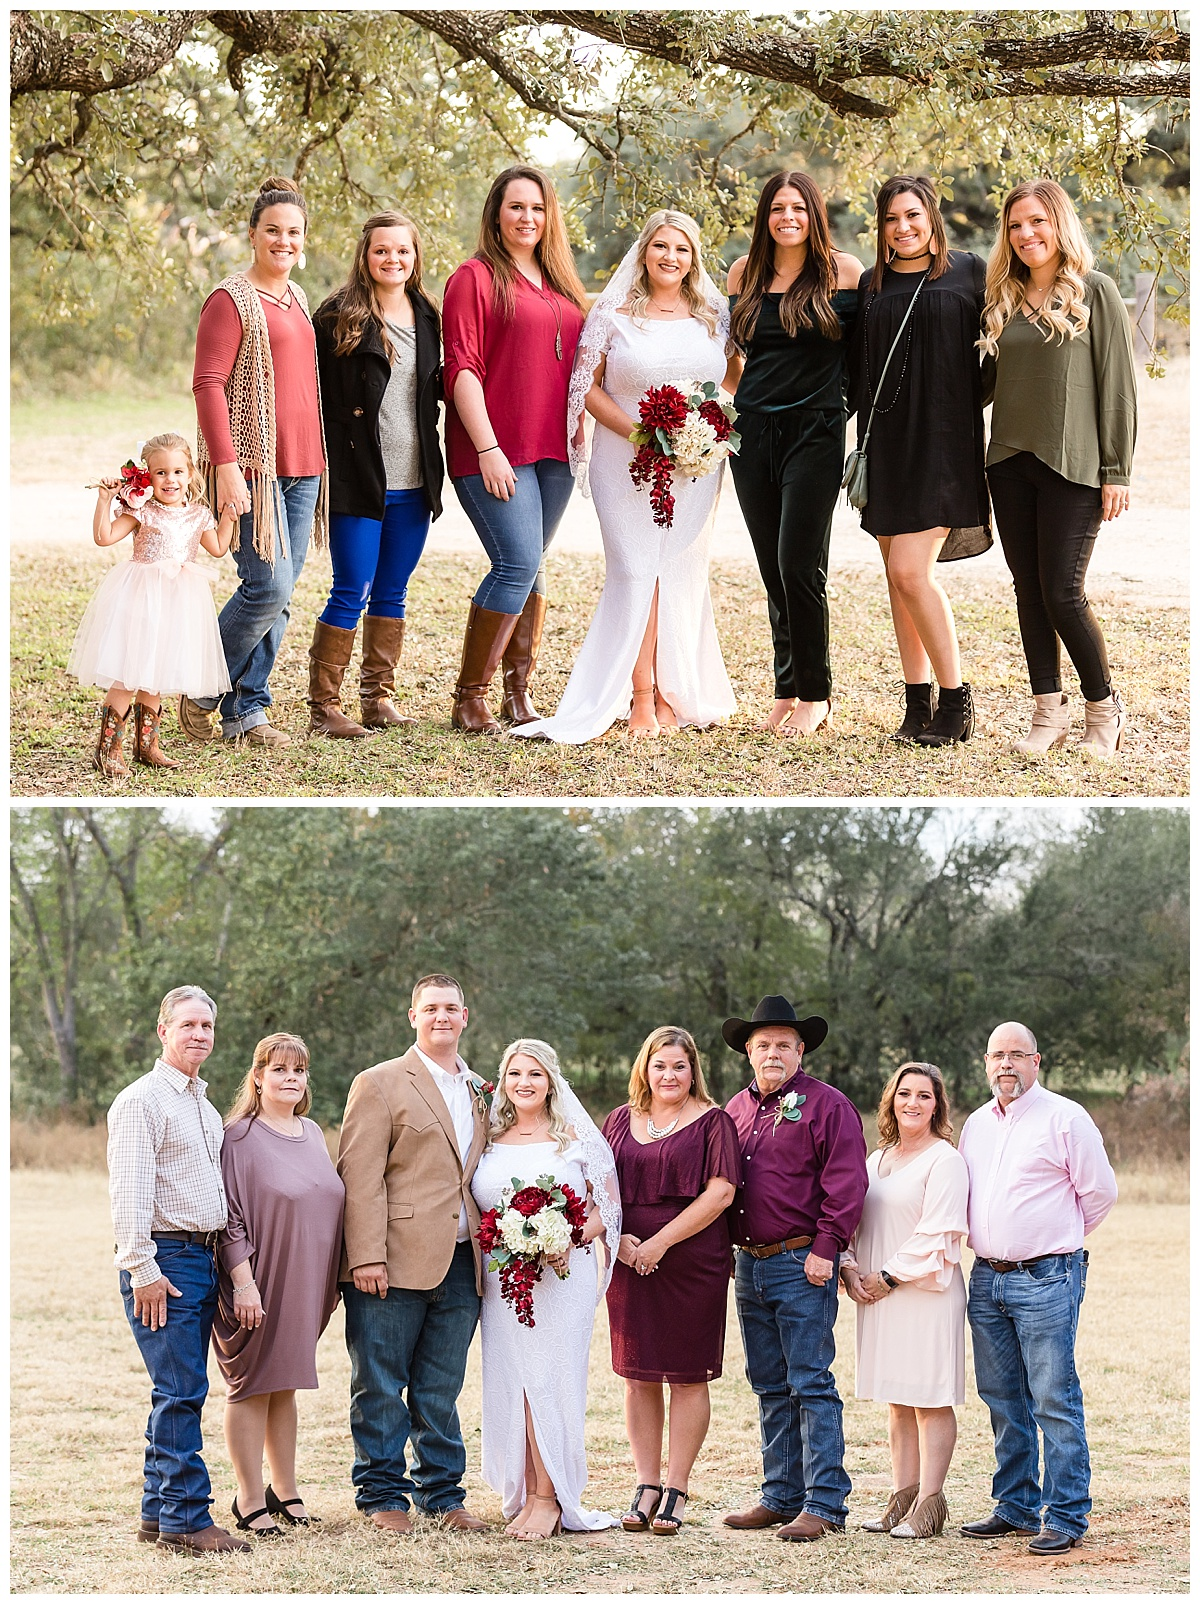 Wedding-Photographer-LaVernia-Texas-Ceremony-Under-the-Trees-Bride-Groom-Fall-McDonald-Carly-Barton-Photography_0008.jpg